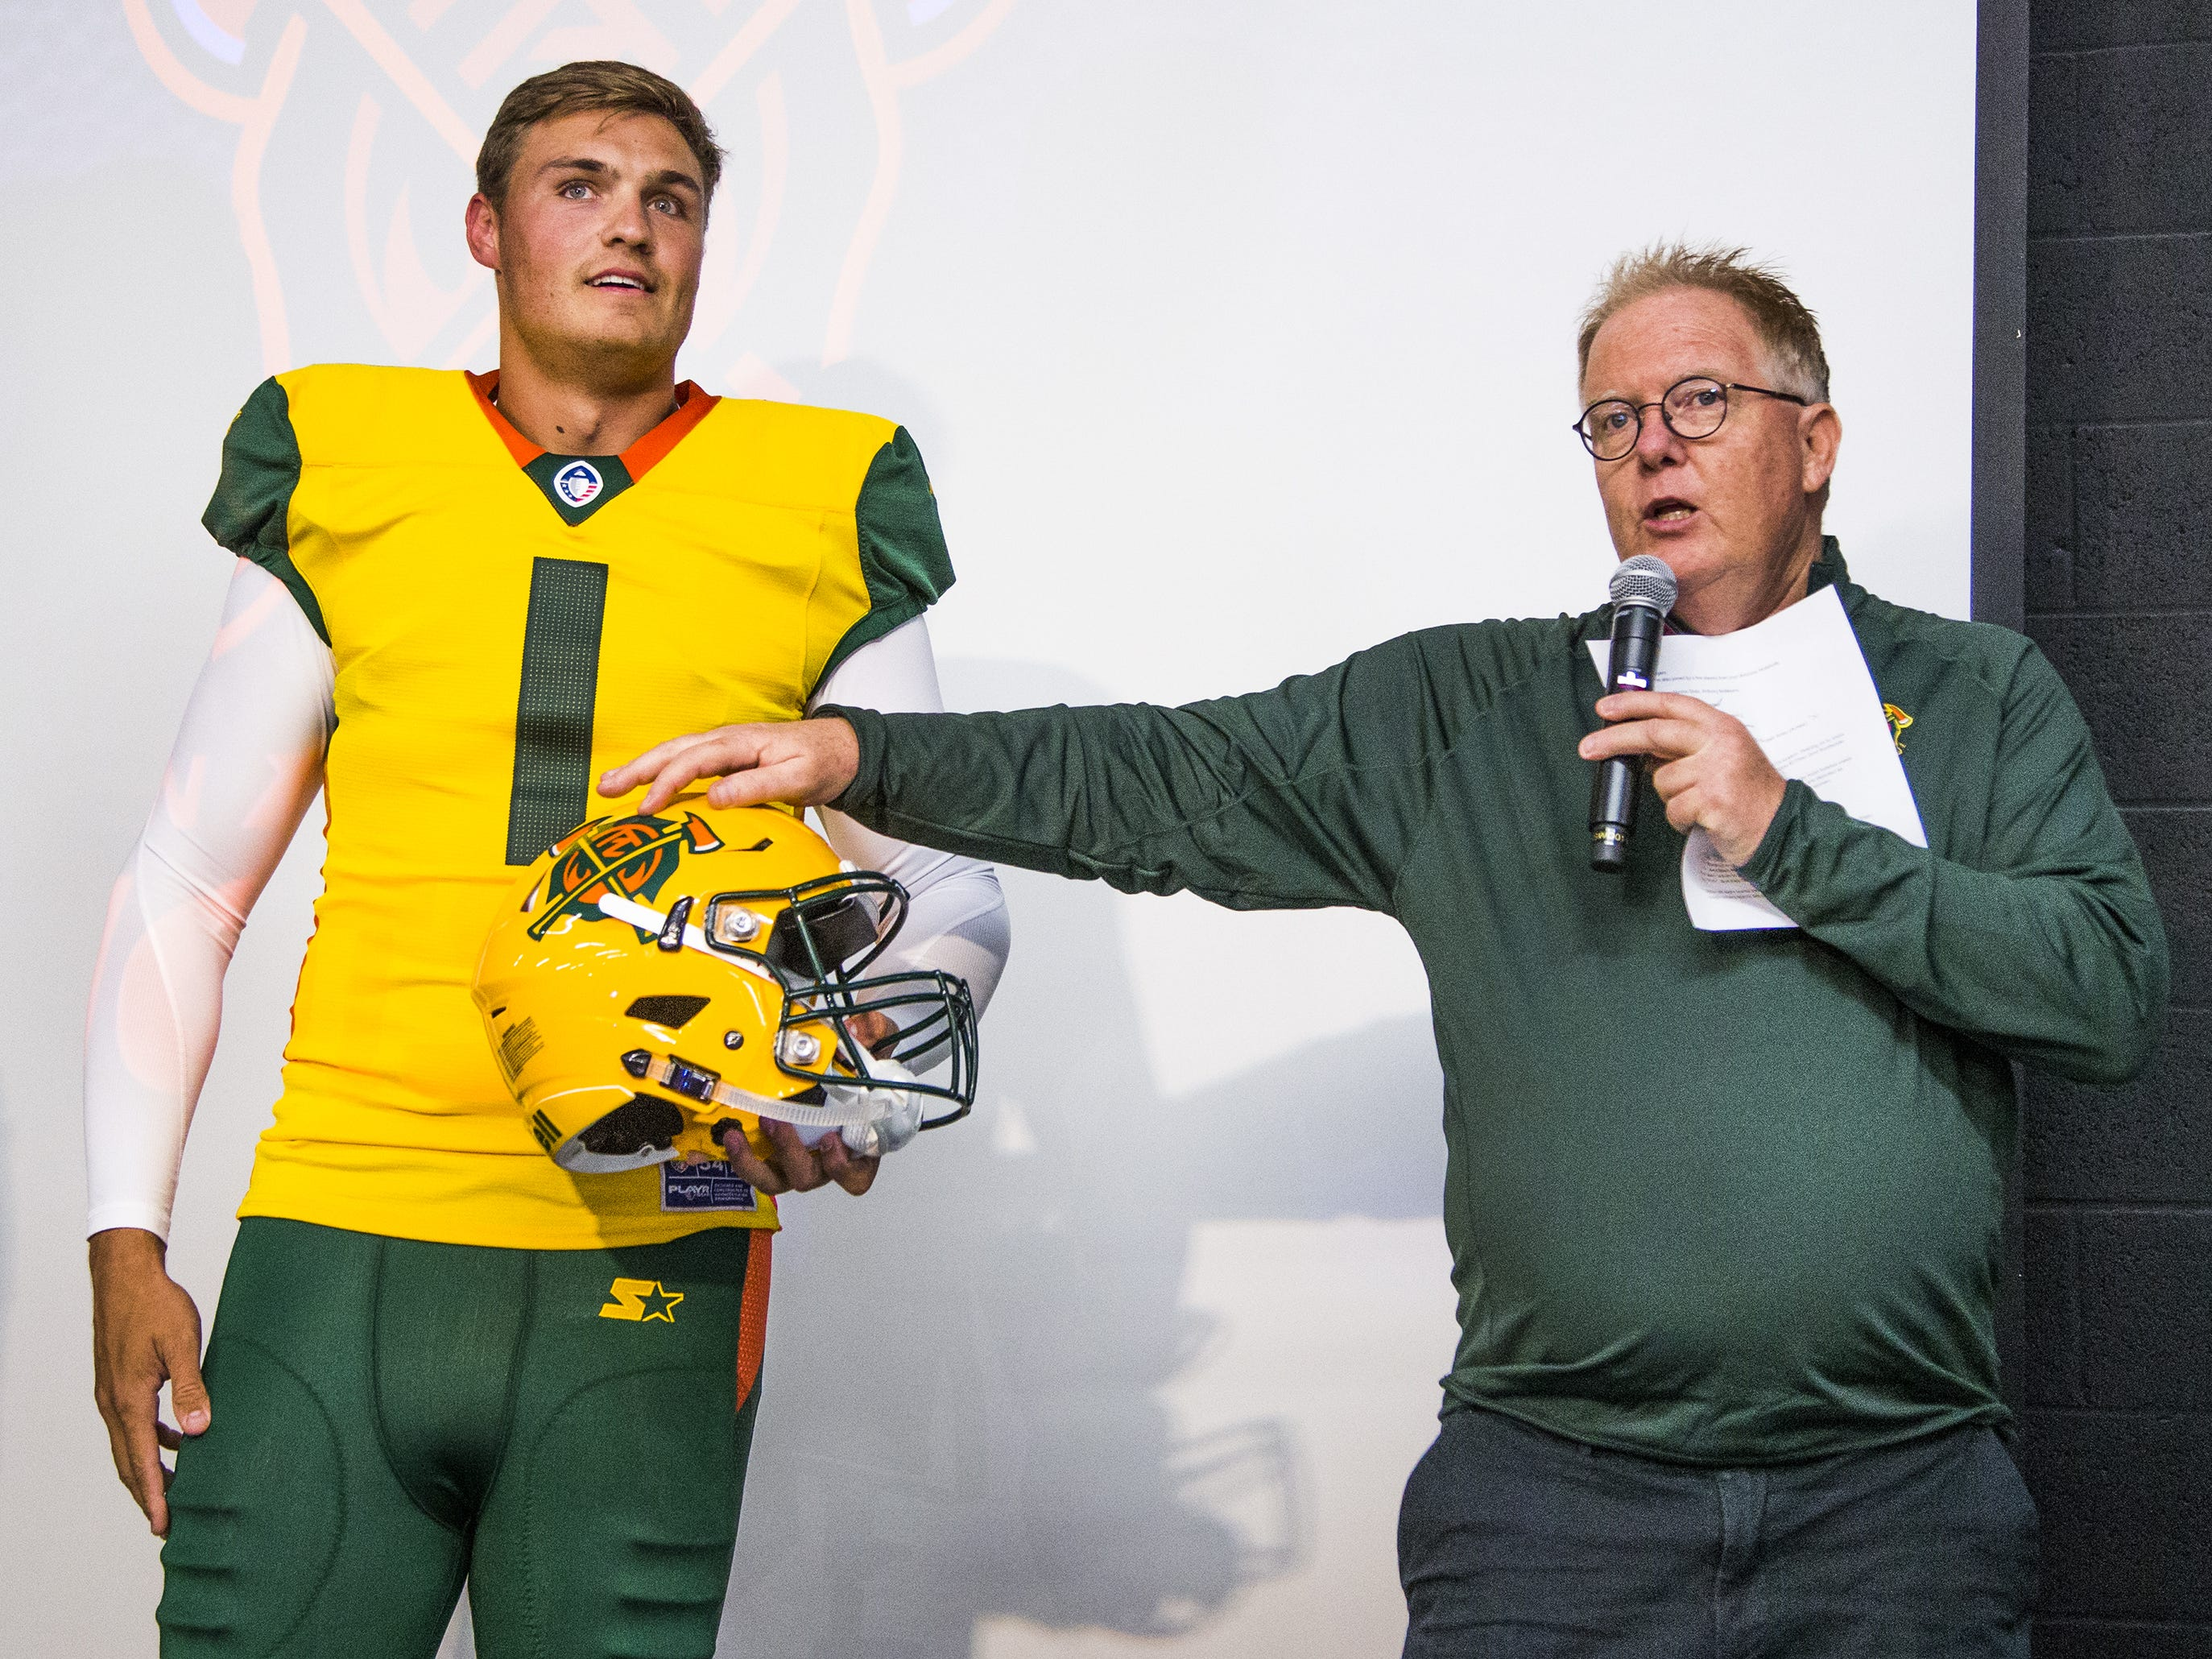 Nick Dooley, a longsnapper, wears the new uniform for the Arizona Hotshots professional football team as radio announcer Jeff Munn shows off the helmet decal at an event at Lumberjaxes in Tempe, Tuesday, November 27, 2018.